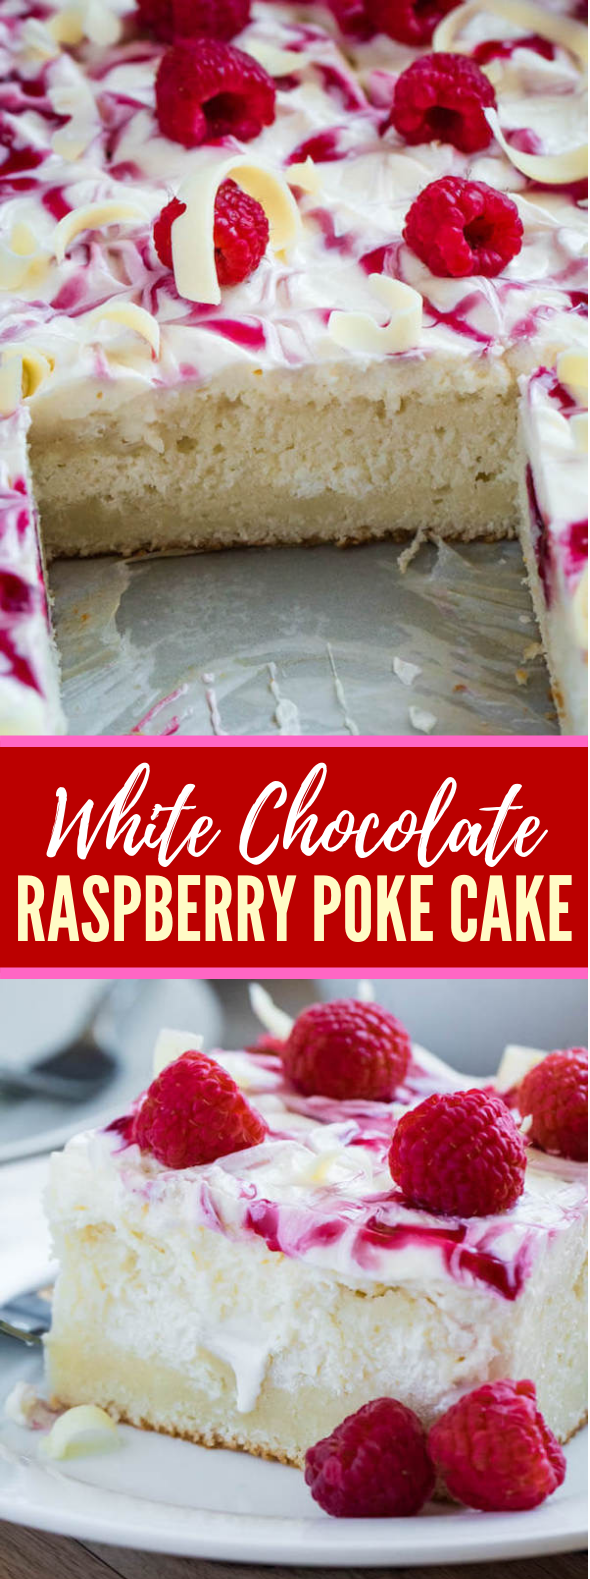 WHITE CHOCOLATE RASPBERRY POKE CAKE #desserts #berries